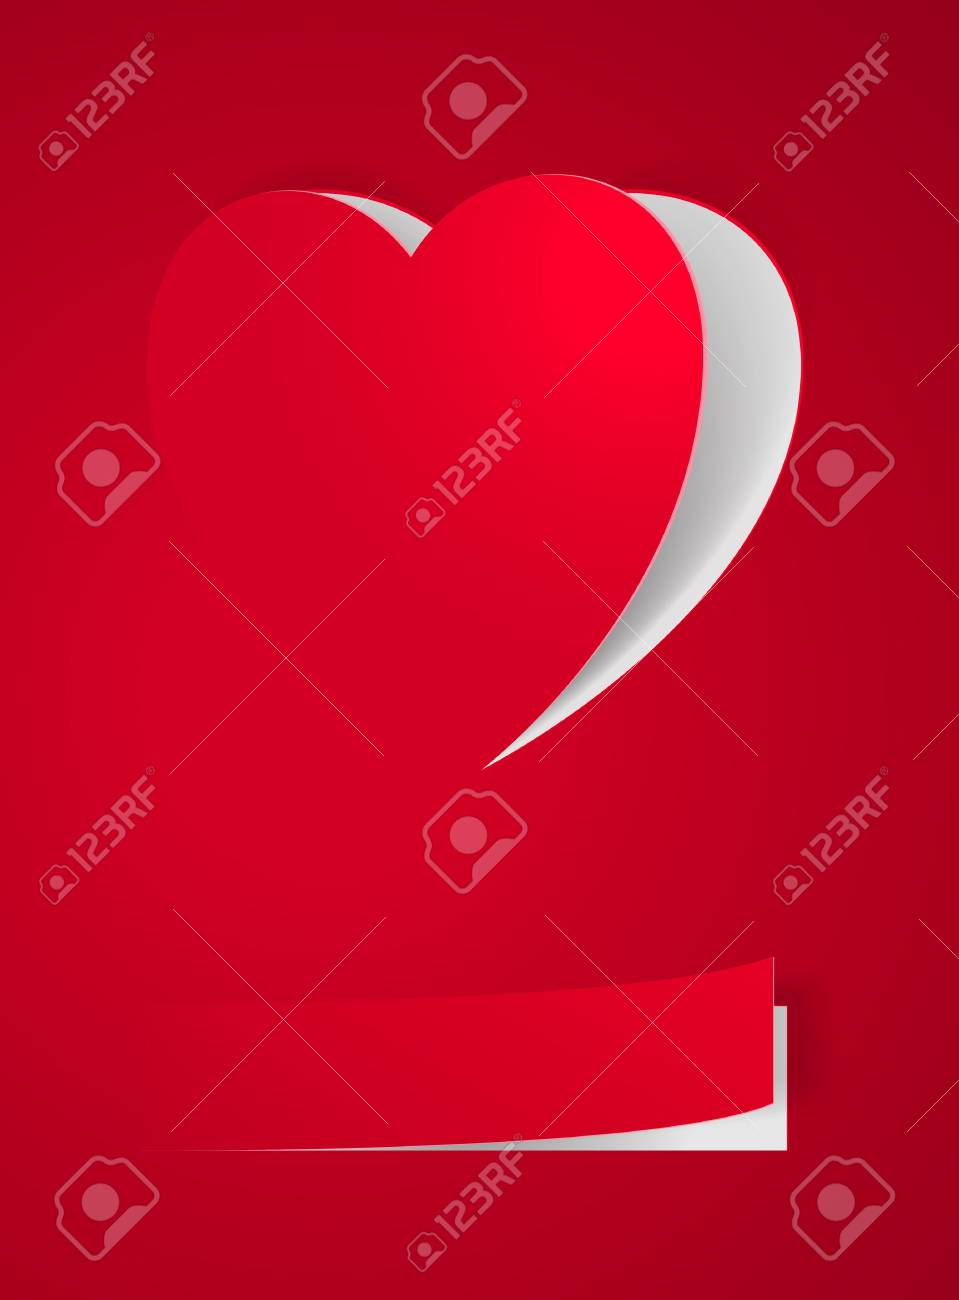 Red Heart Card. Illustration on red for design Stock Vector - 16954666